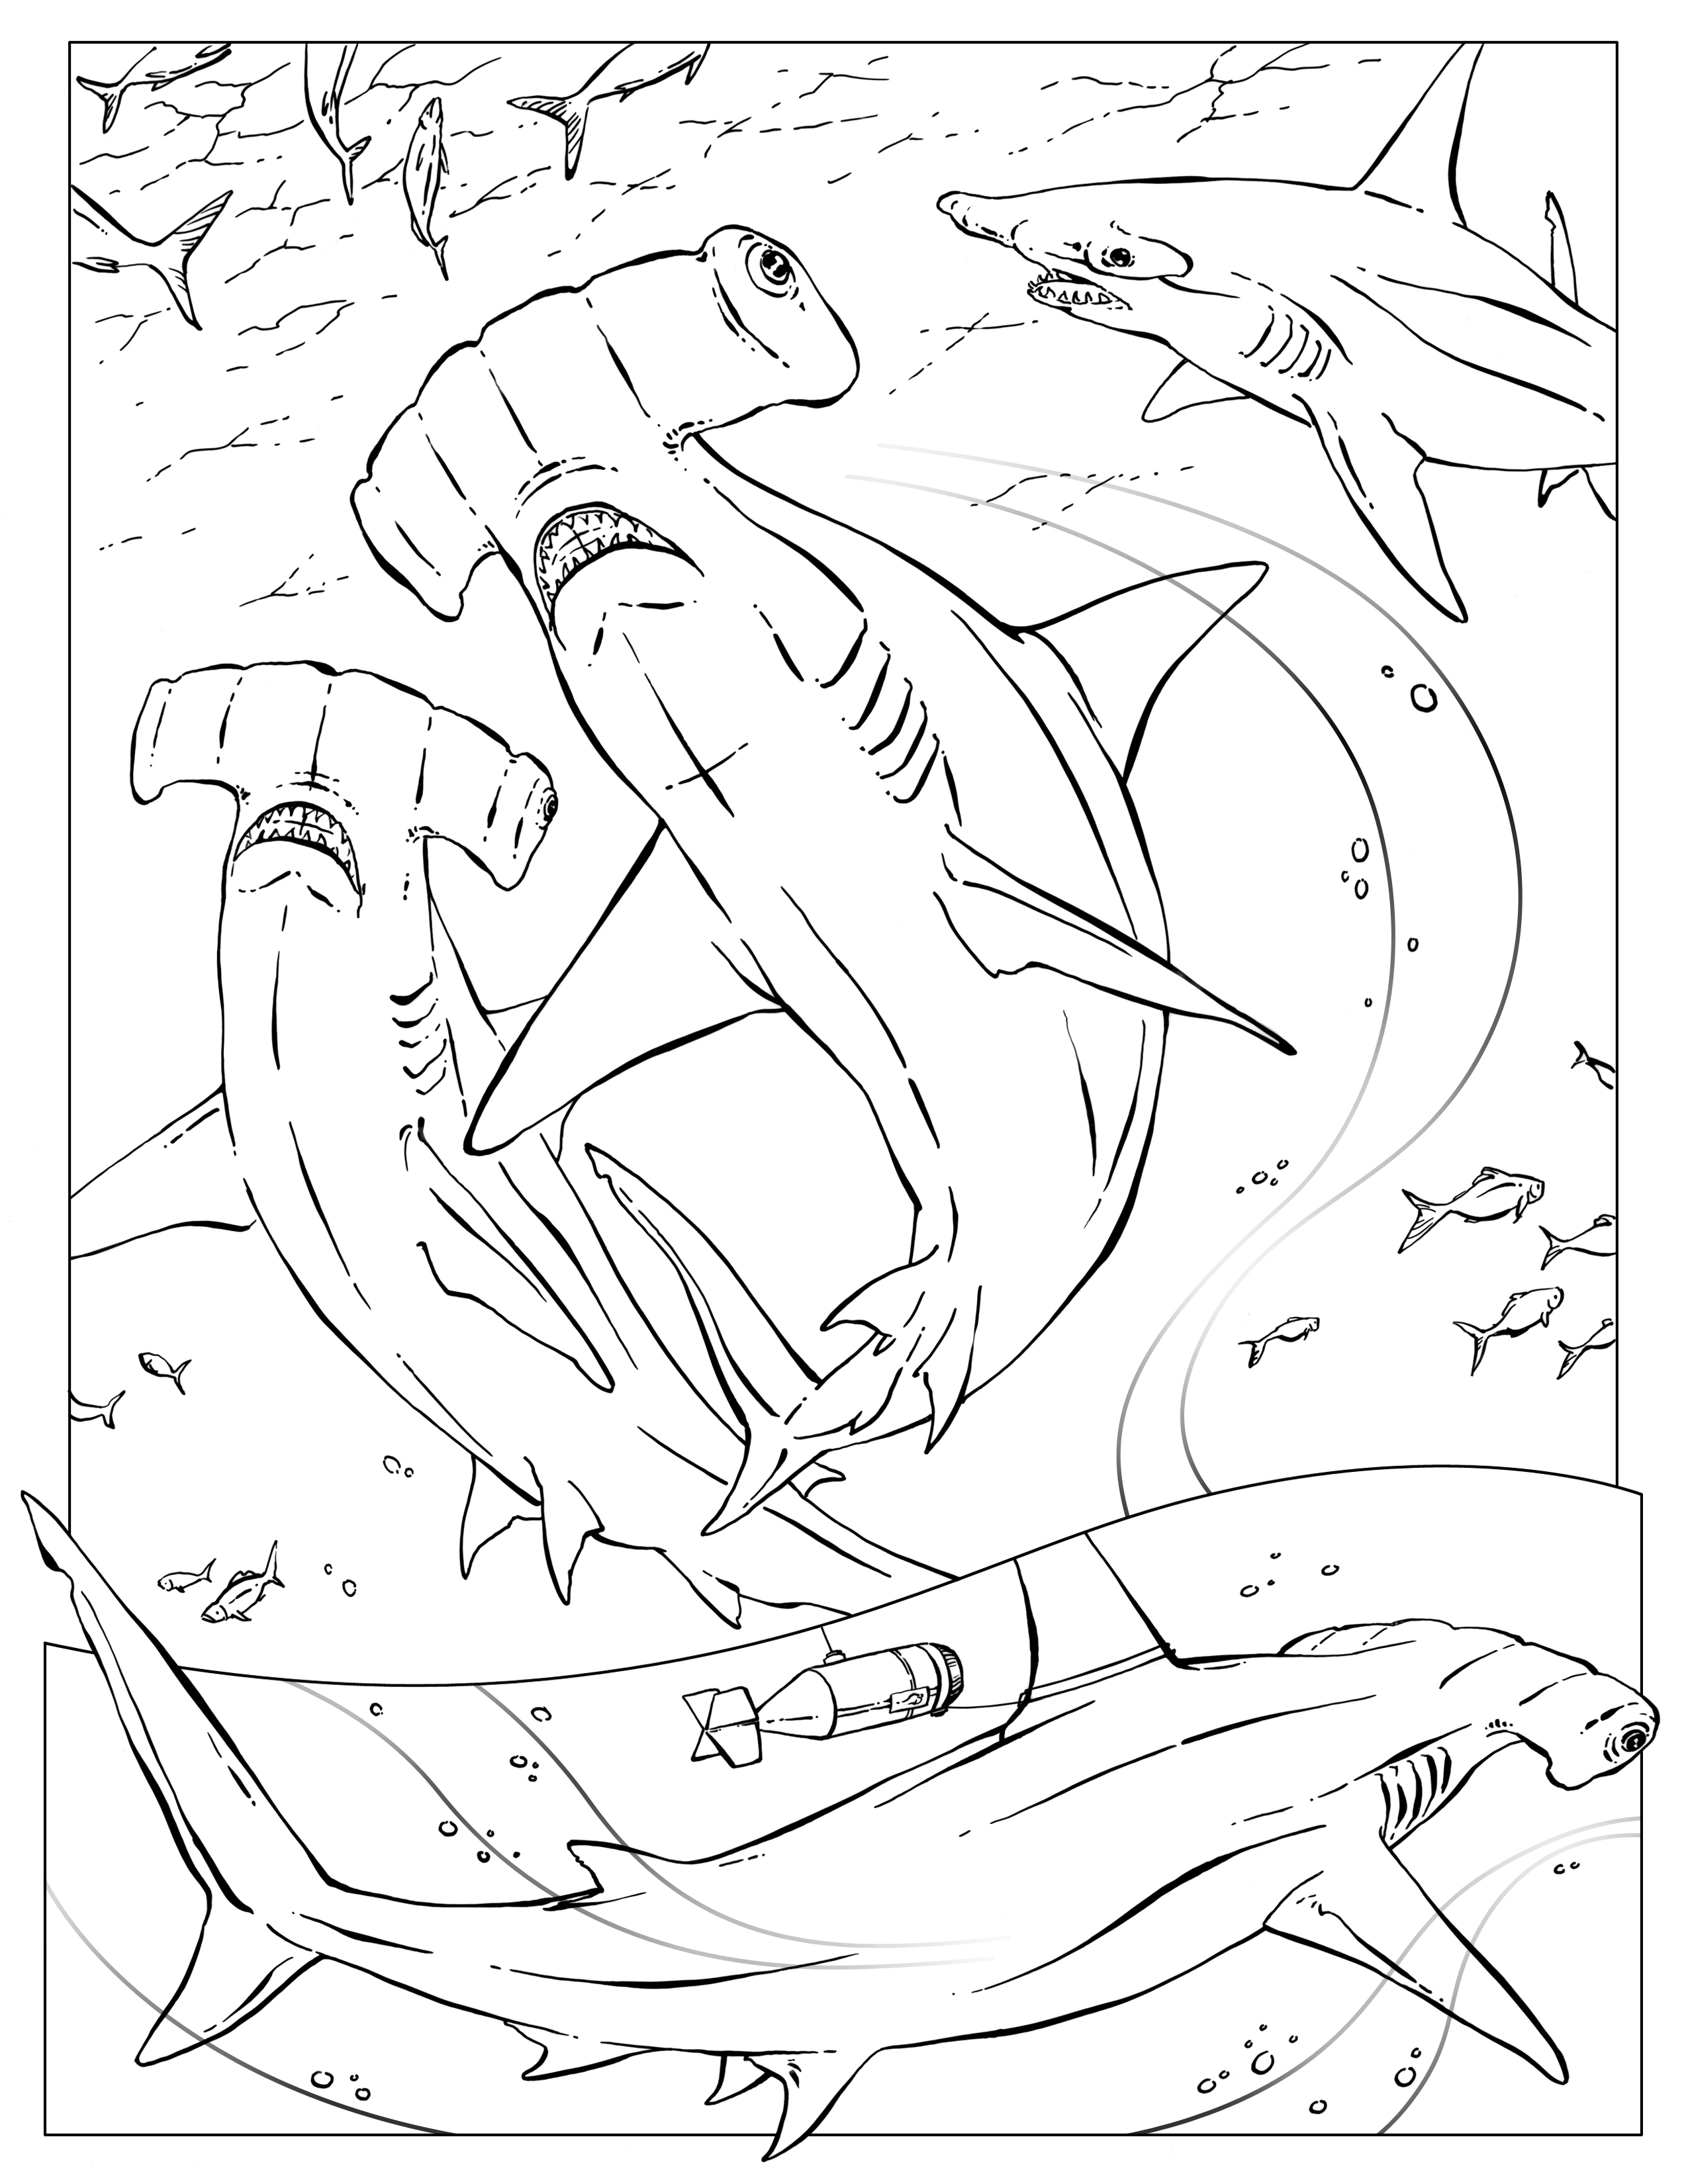 2550x3300 Coloring Pages Of Hammerhead Sharks Free Hammerhead Shark Coloring